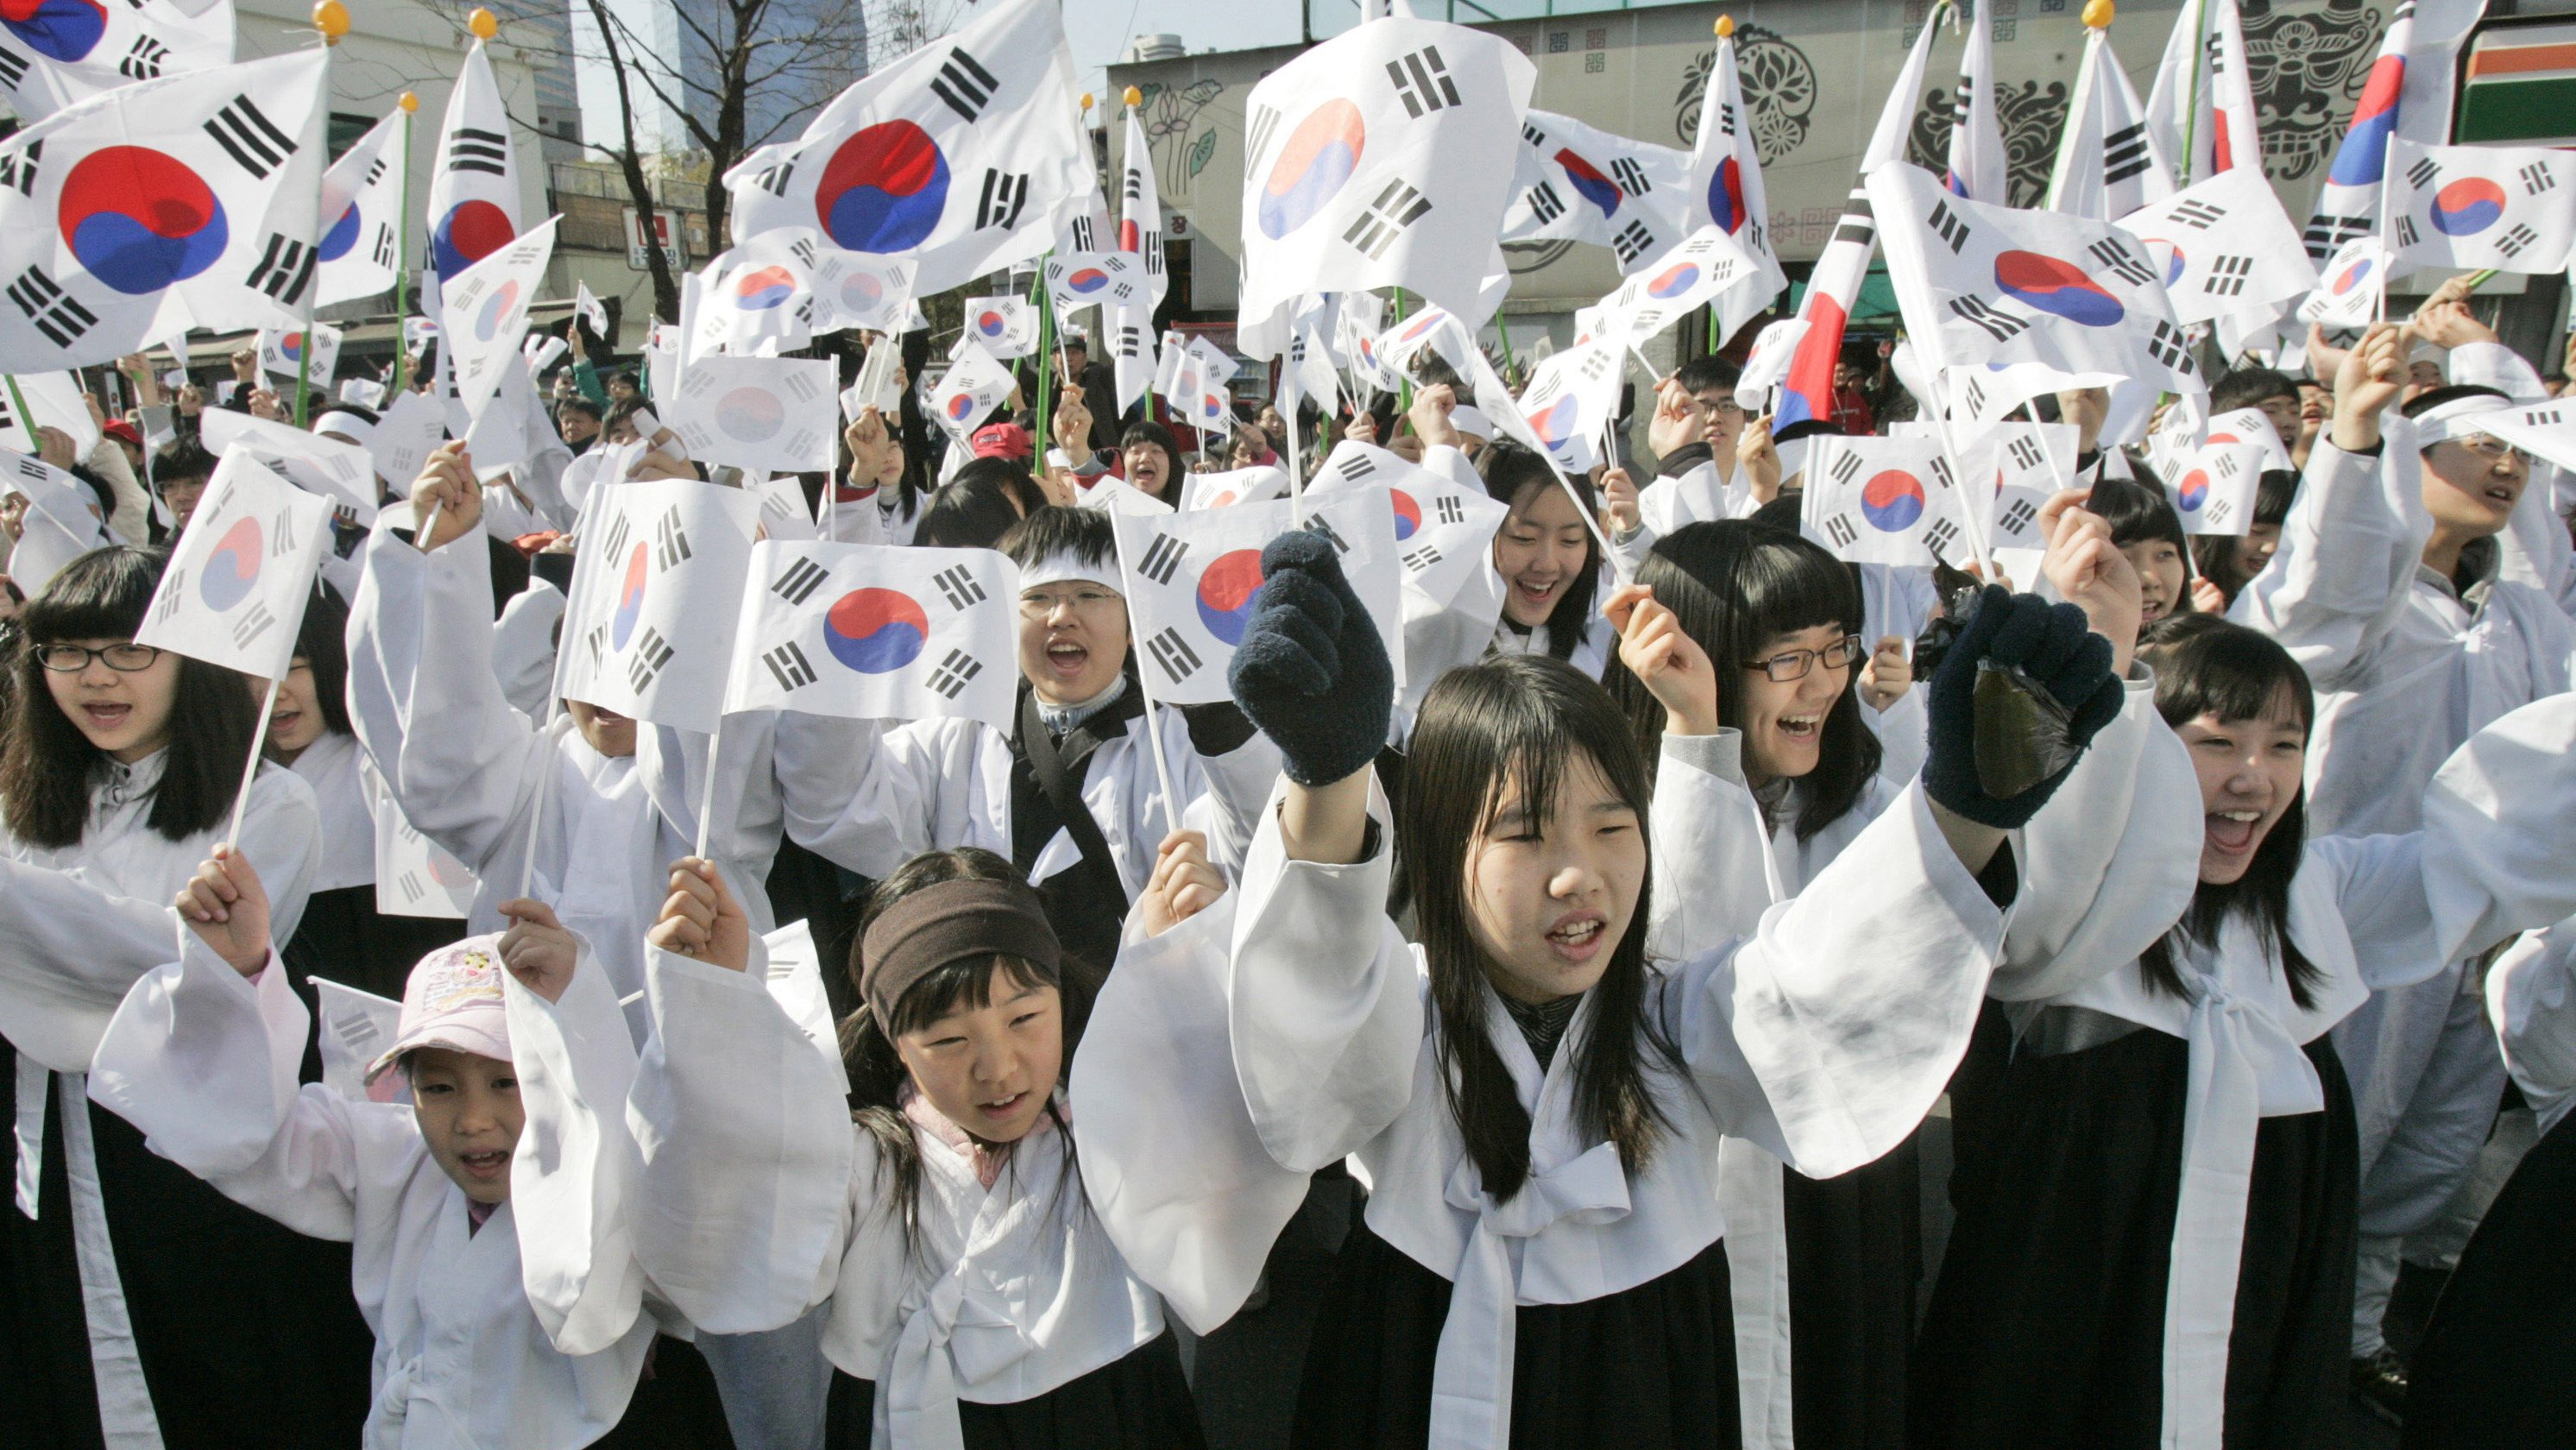 South Korean students wearing traditional Korean costumes shout as they wave their naational flags during a ceremony to celebrate the March First Independence Movement Day, the anniversary of the 1919 uprising against Japanese colonial rule, in Seoul, South Korea, Sunday, March 1, 2009. (AP Photo/Ahn Young-joon)